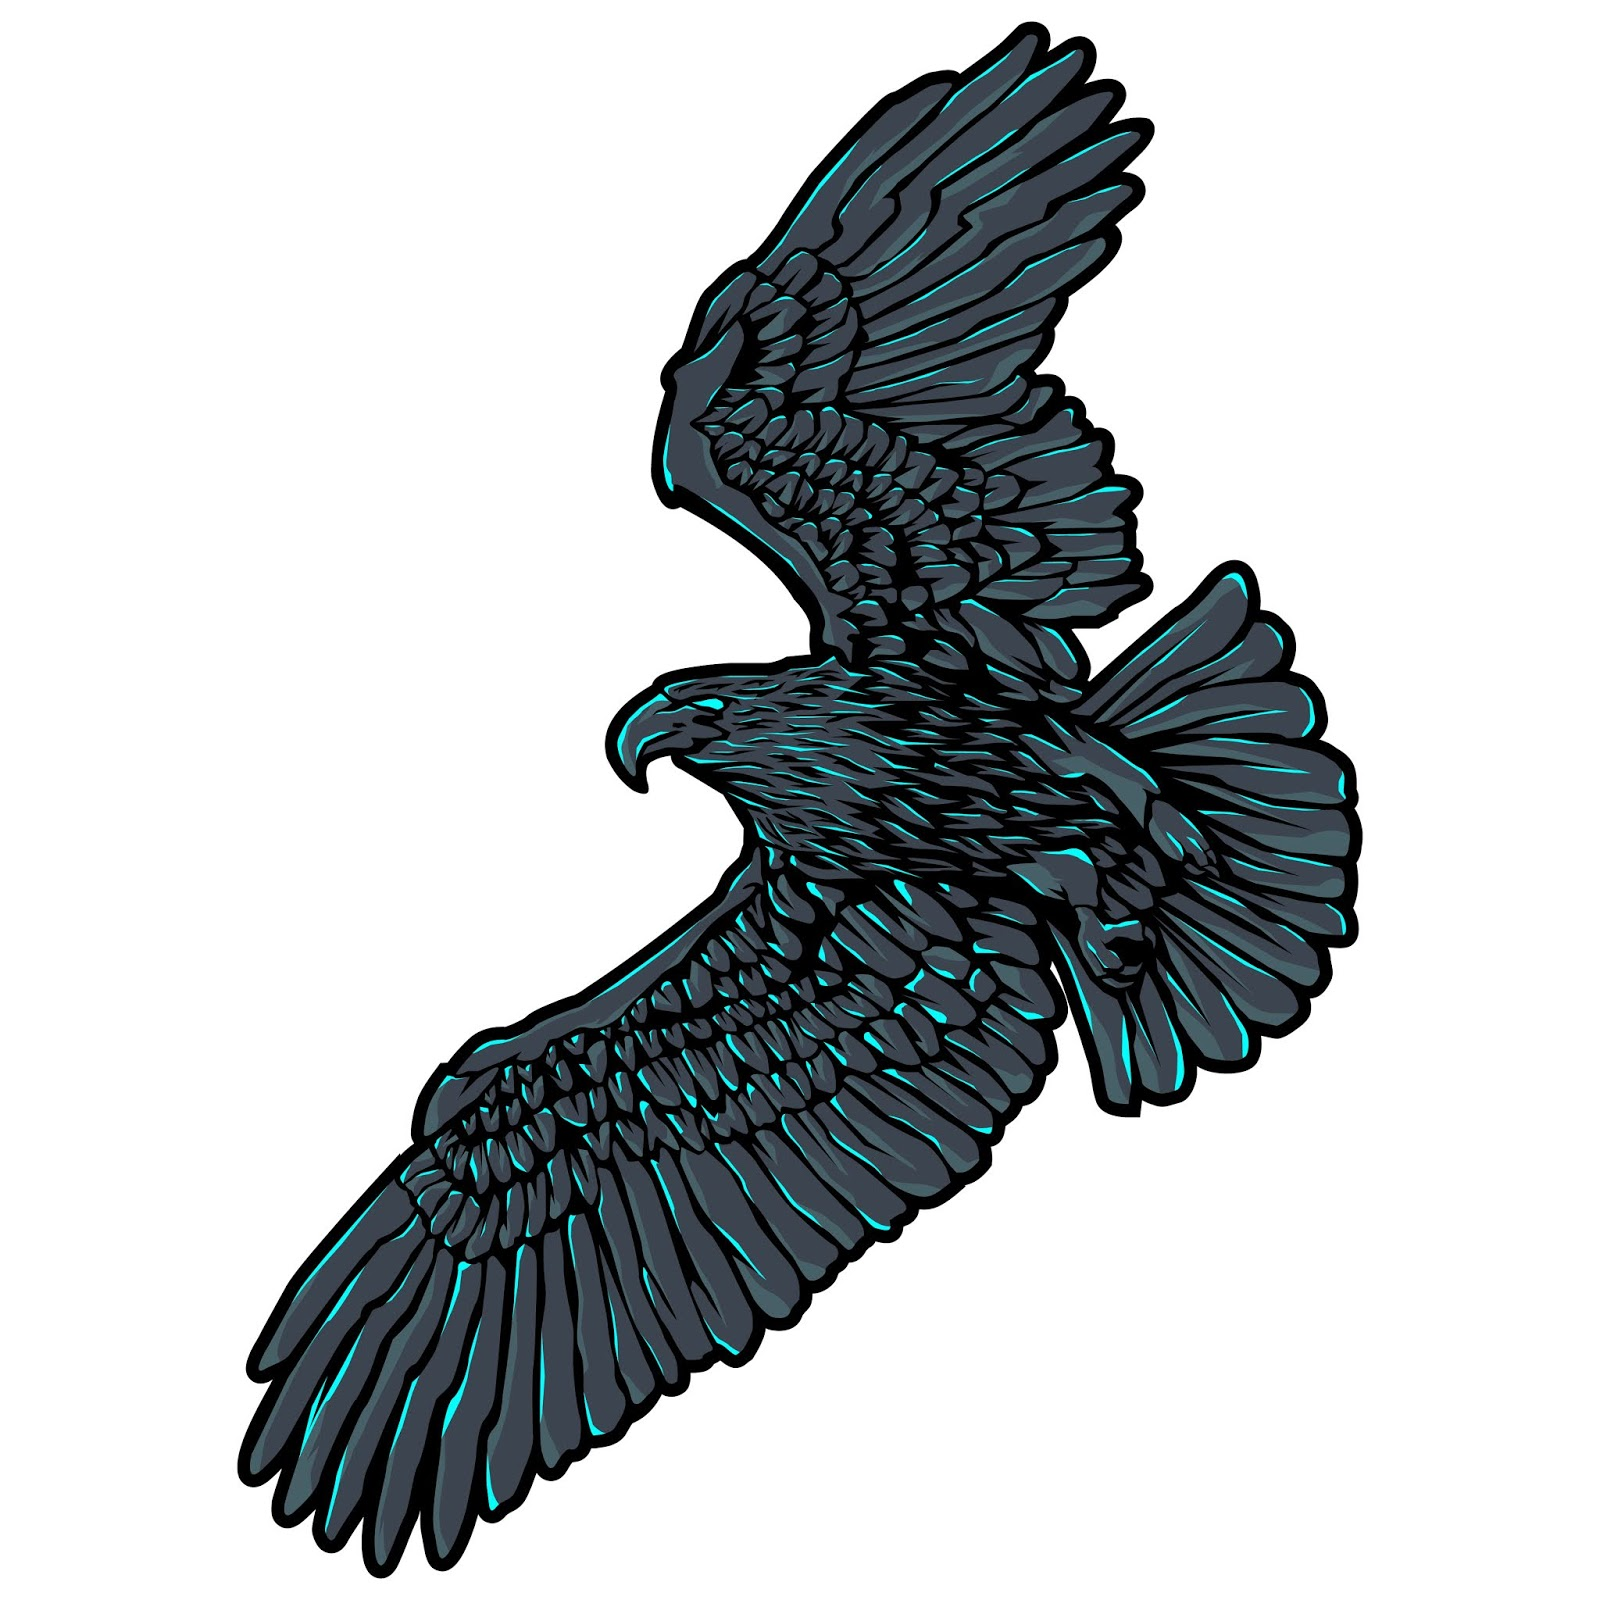 Flying Eagle Illustration Free Download Vector CDR, AI, EPS and PNG Formats